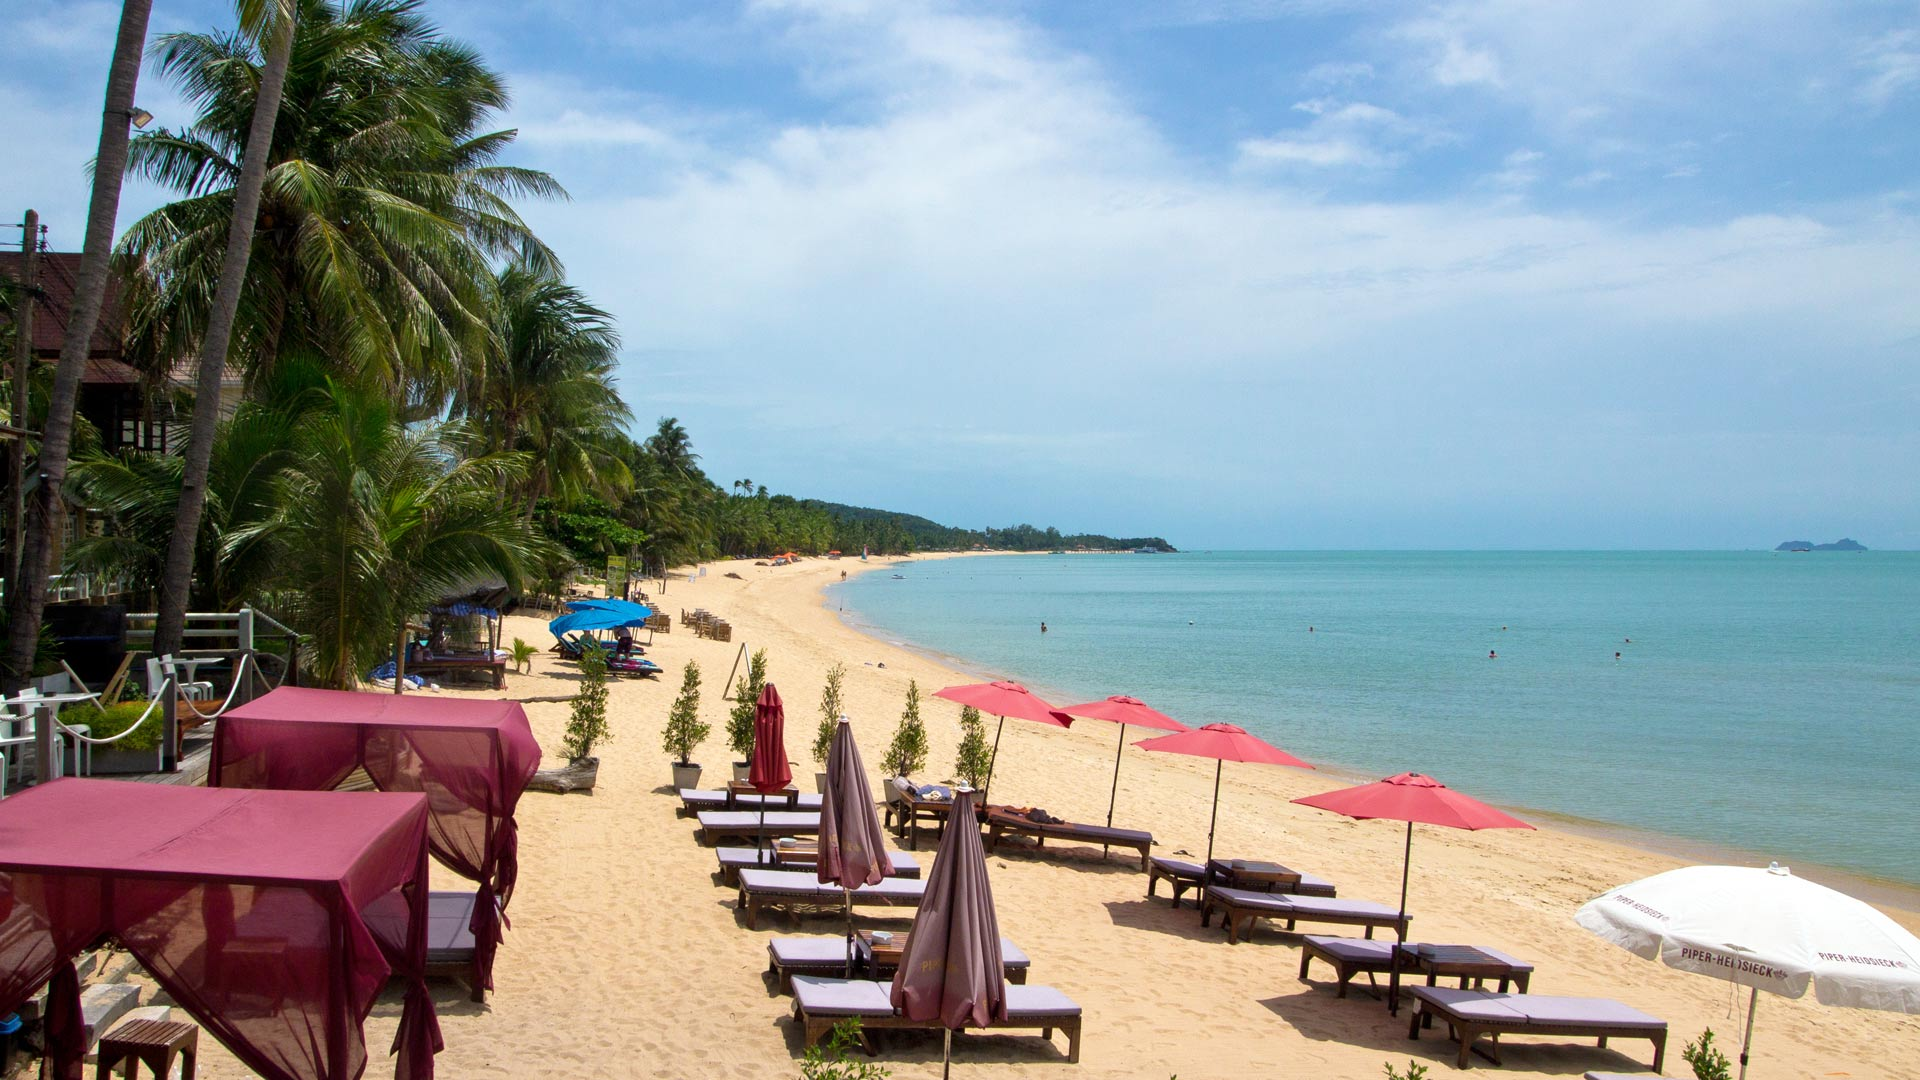 koh samui beach guide the most stunning beaches of the island travel blog about southeast. Black Bedroom Furniture Sets. Home Design Ideas